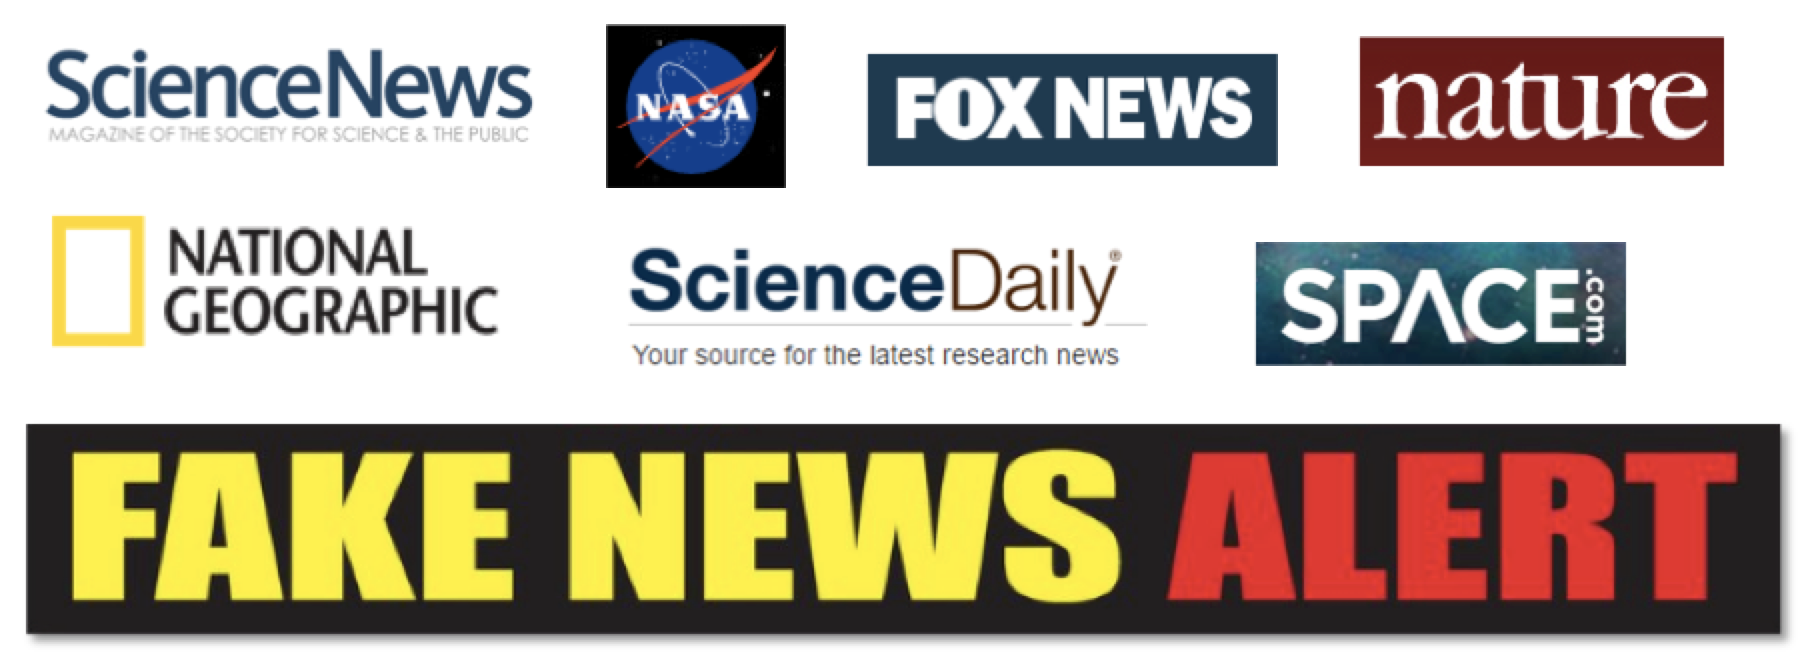 fake-news-science-alert-rsr.png